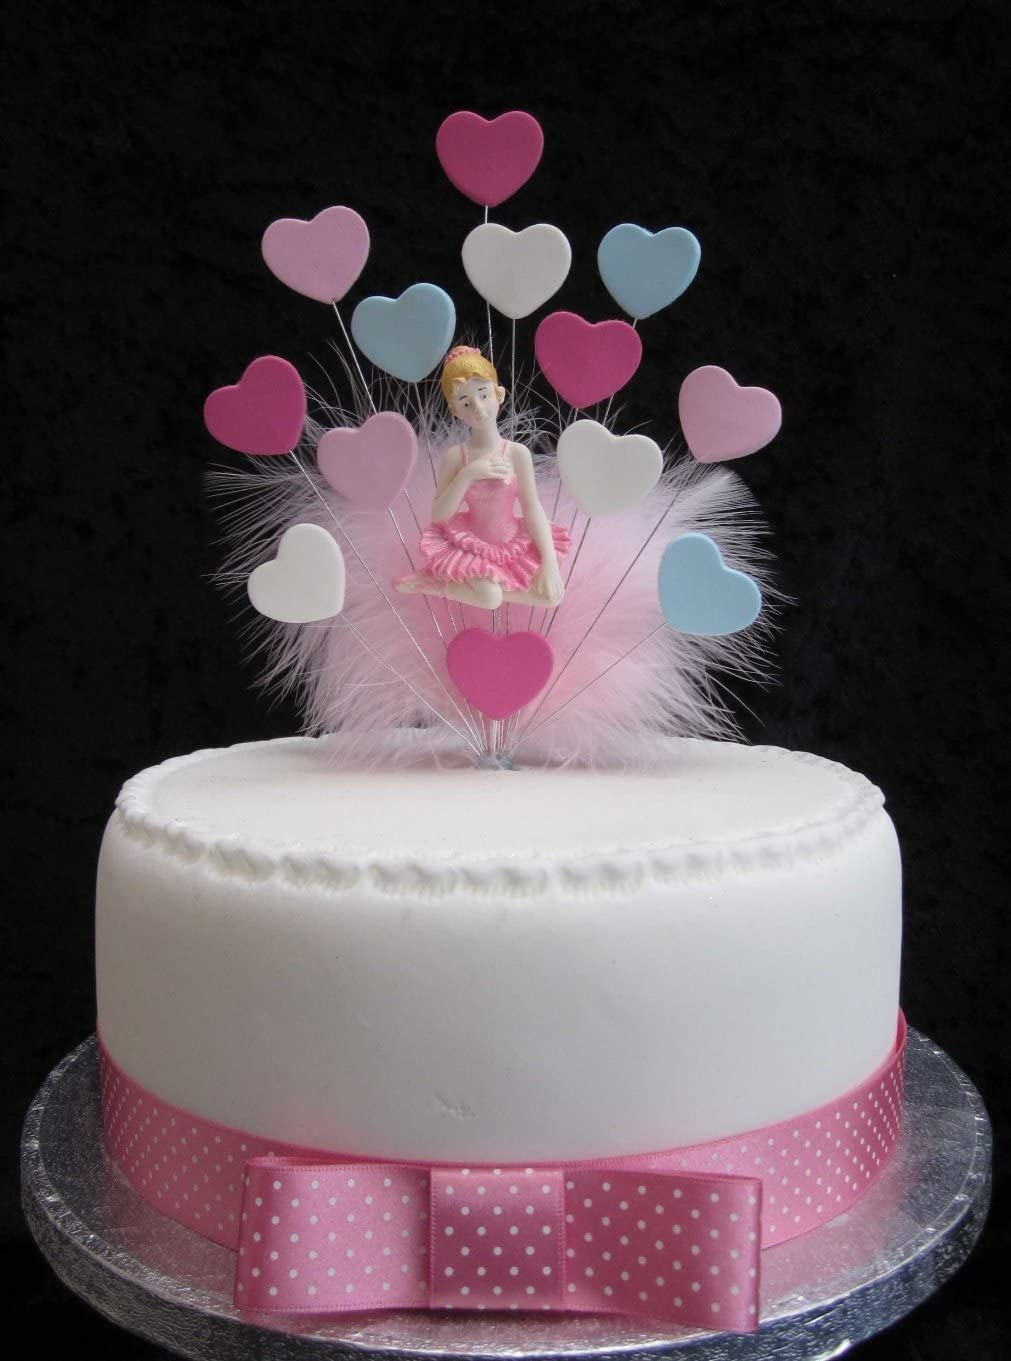 Outstanding Ballerina Birthday Cake Topper With Hearts And Marabou Feathers Personalised Birthday Cards Paralily Jamesorg